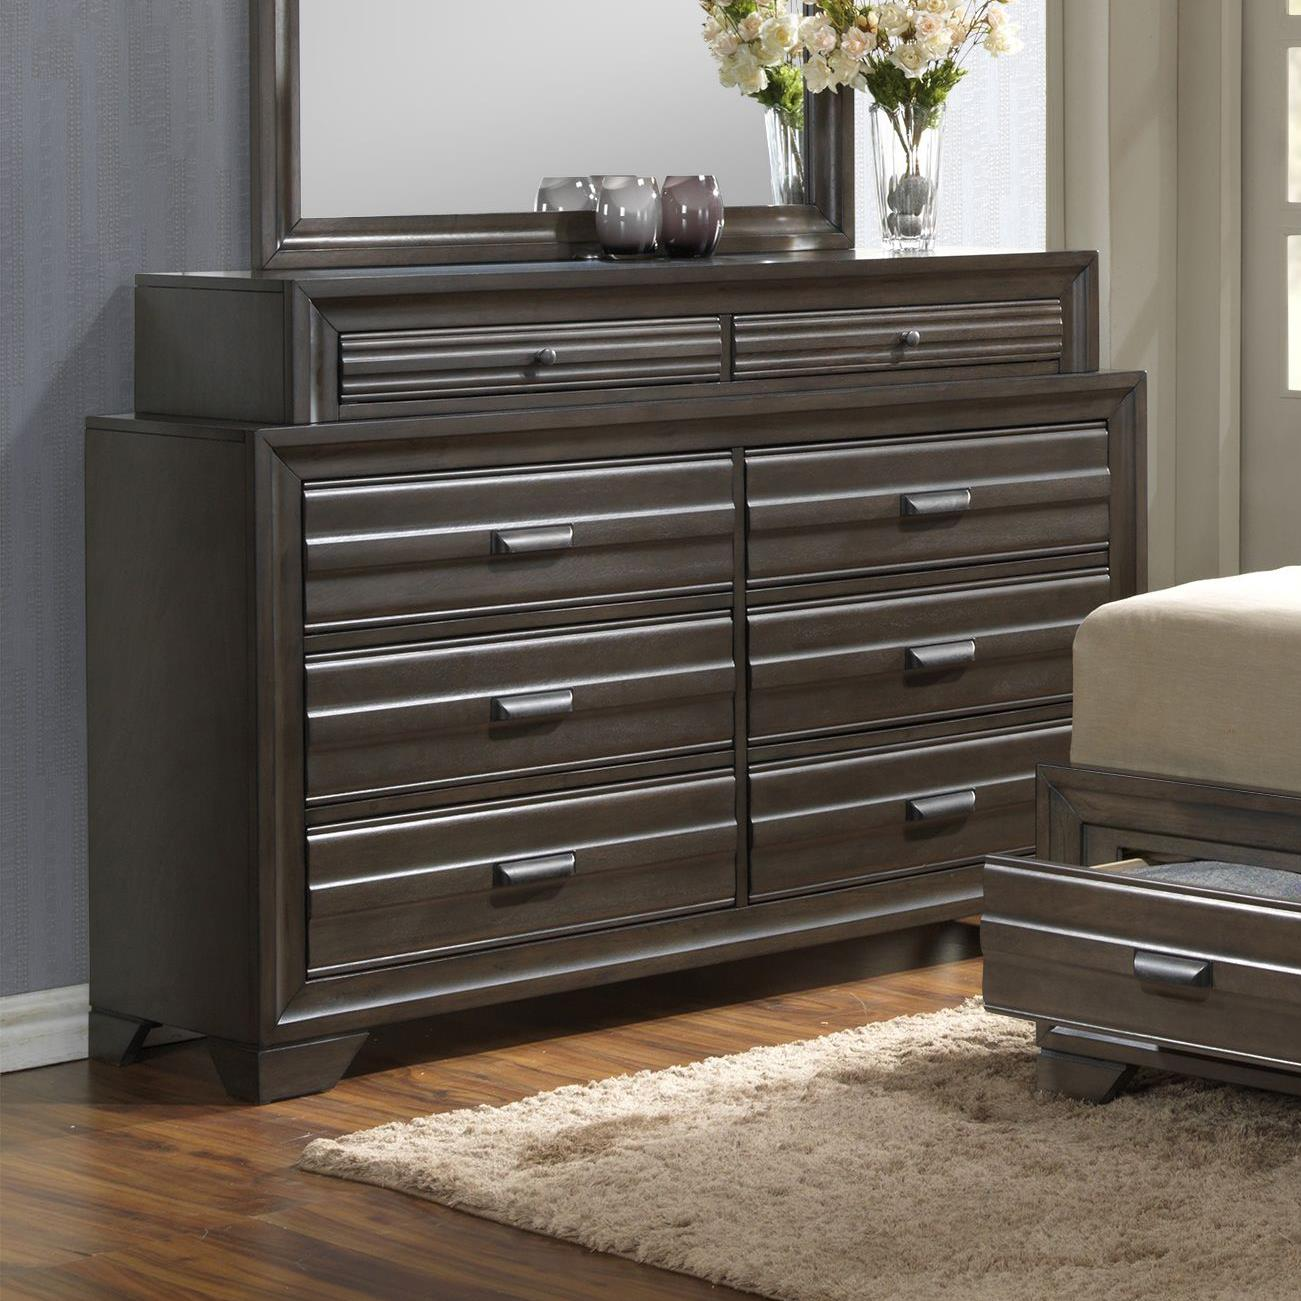 5236A 8 Drawer Dresser by Lifestyle at Beck's Furniture